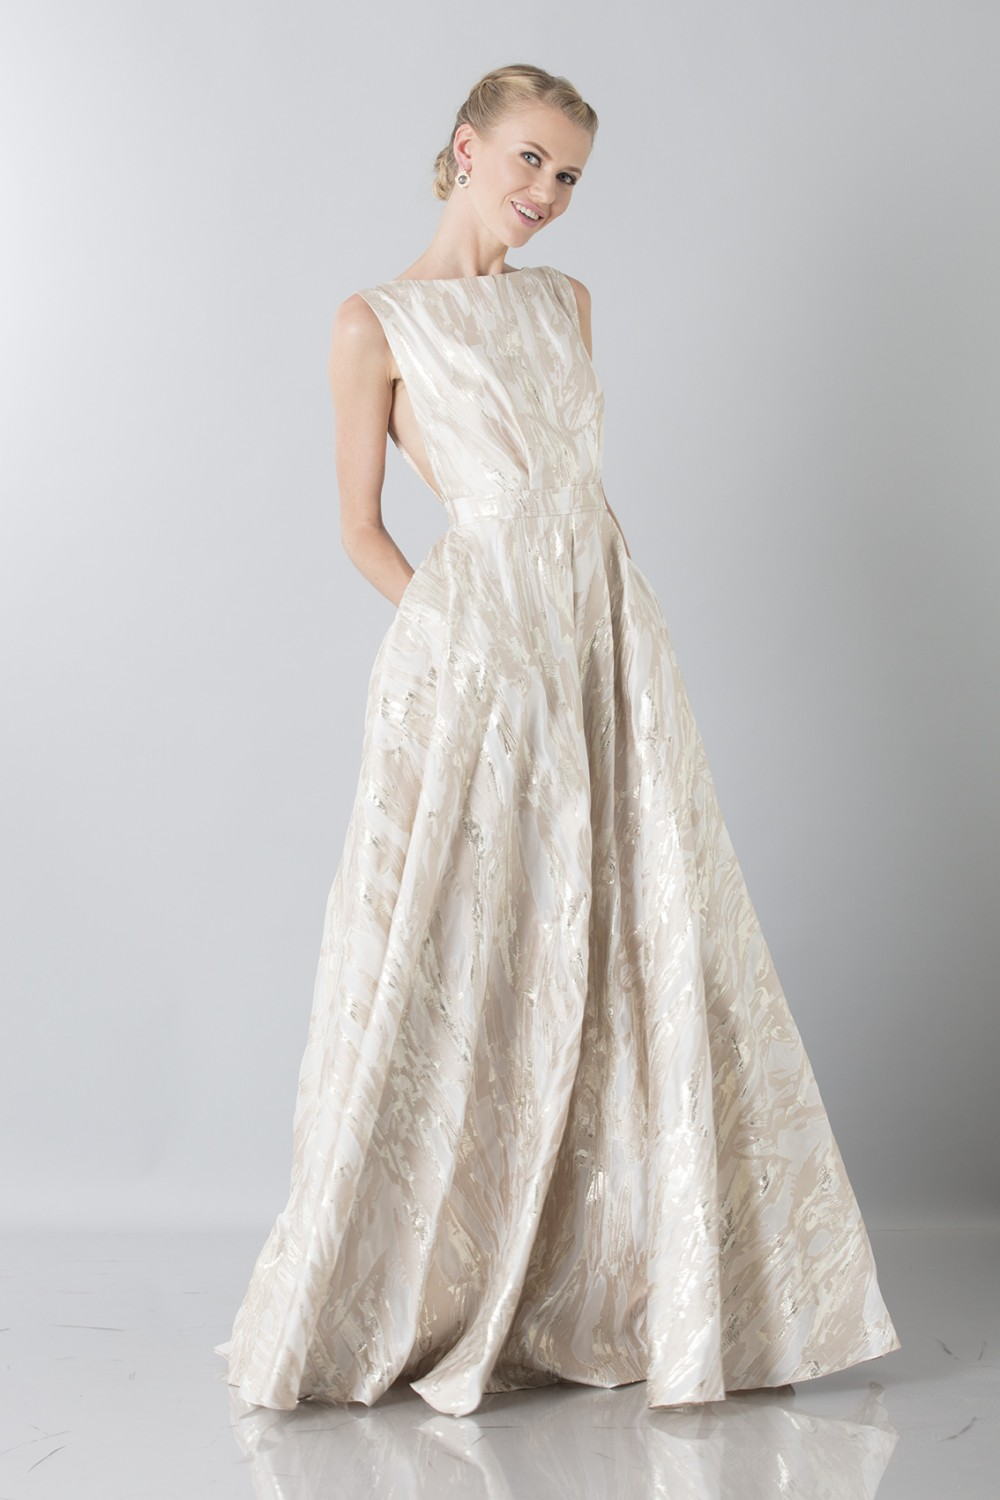 Long dress with golden pattern